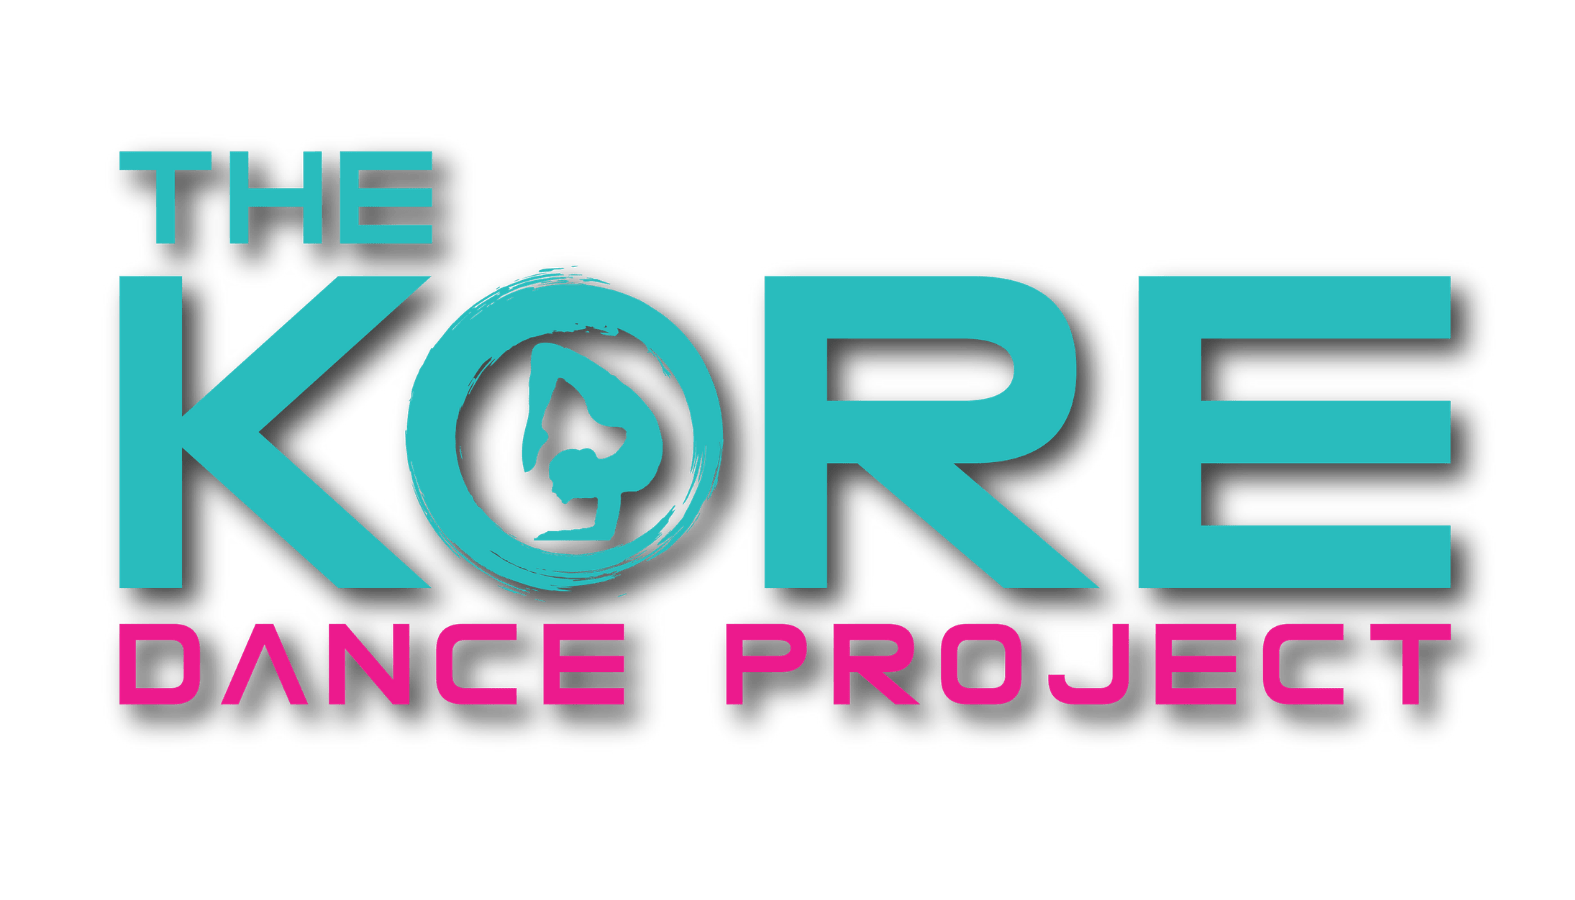 the kore dance project logo